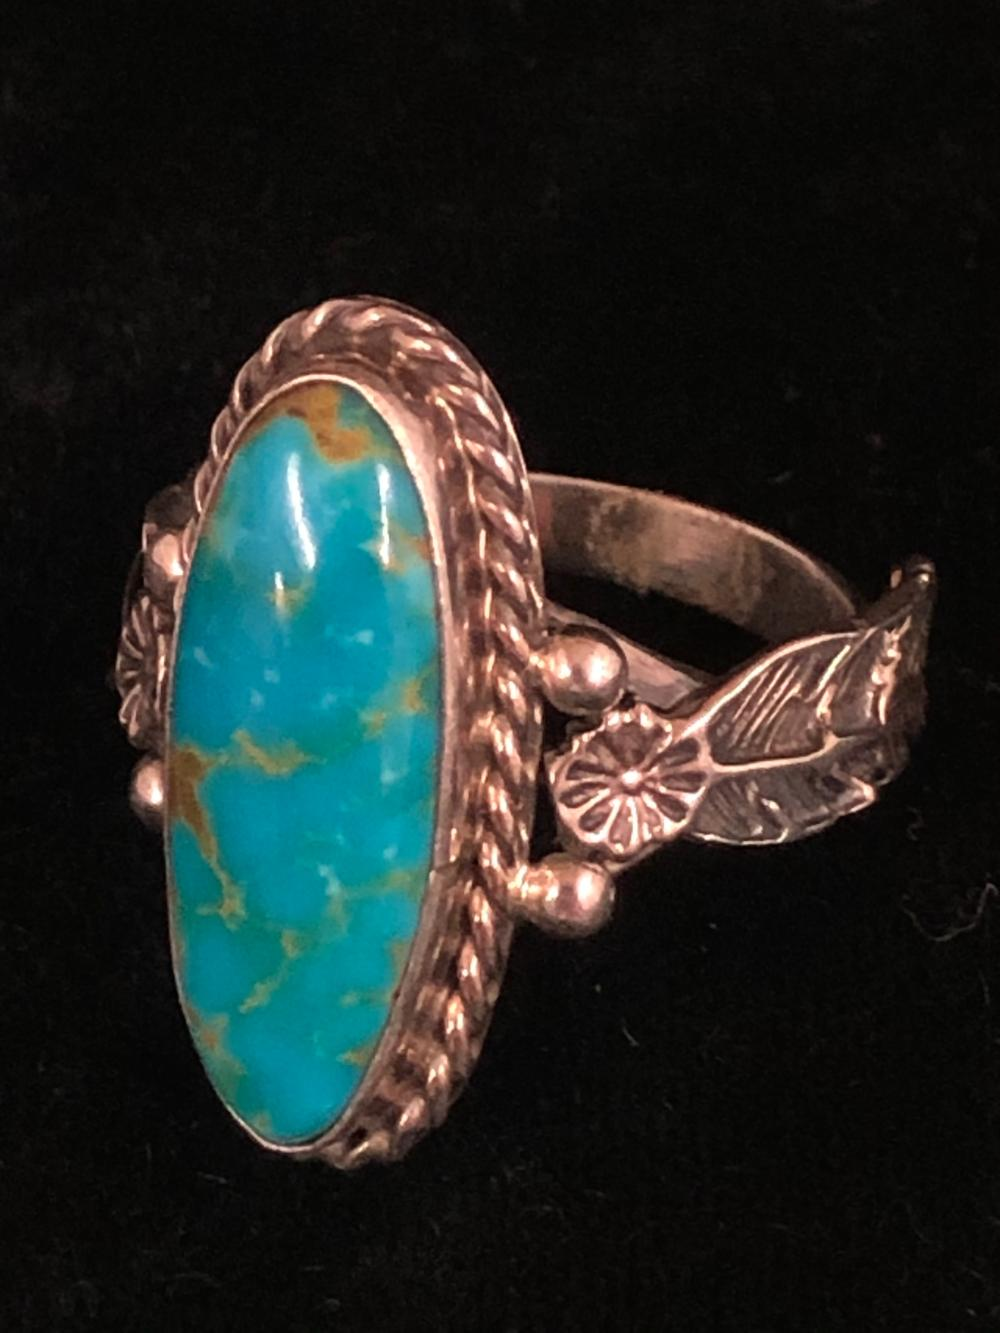 Oval turquoise stone sterling silver ring with feather design